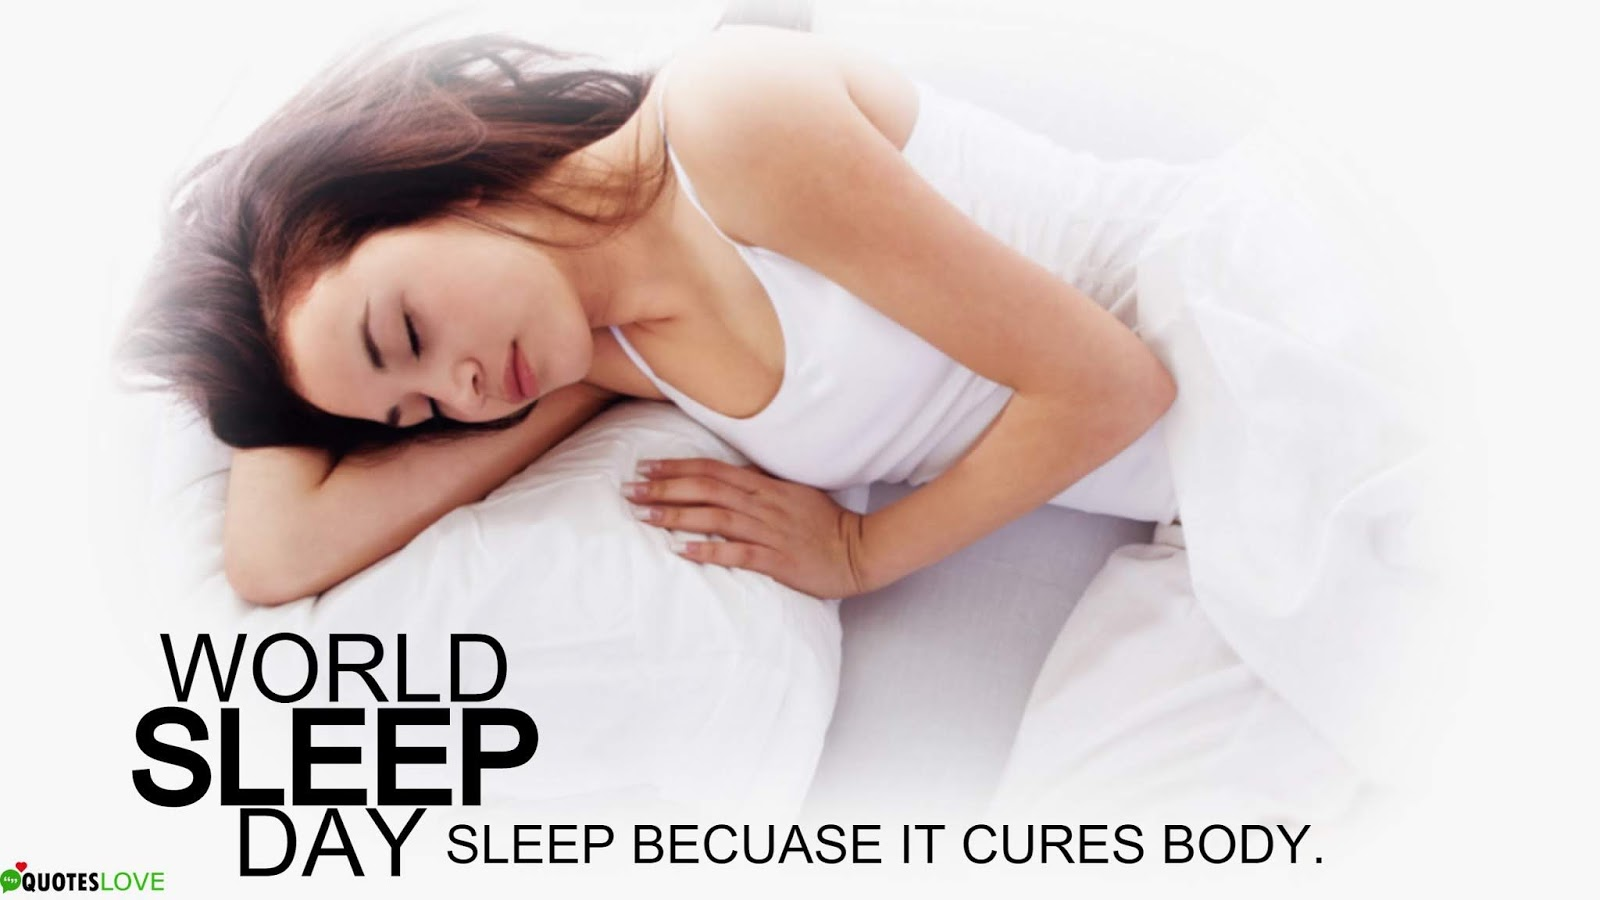 (Latest) World Sleep Day Images, Poster, Wallpaper